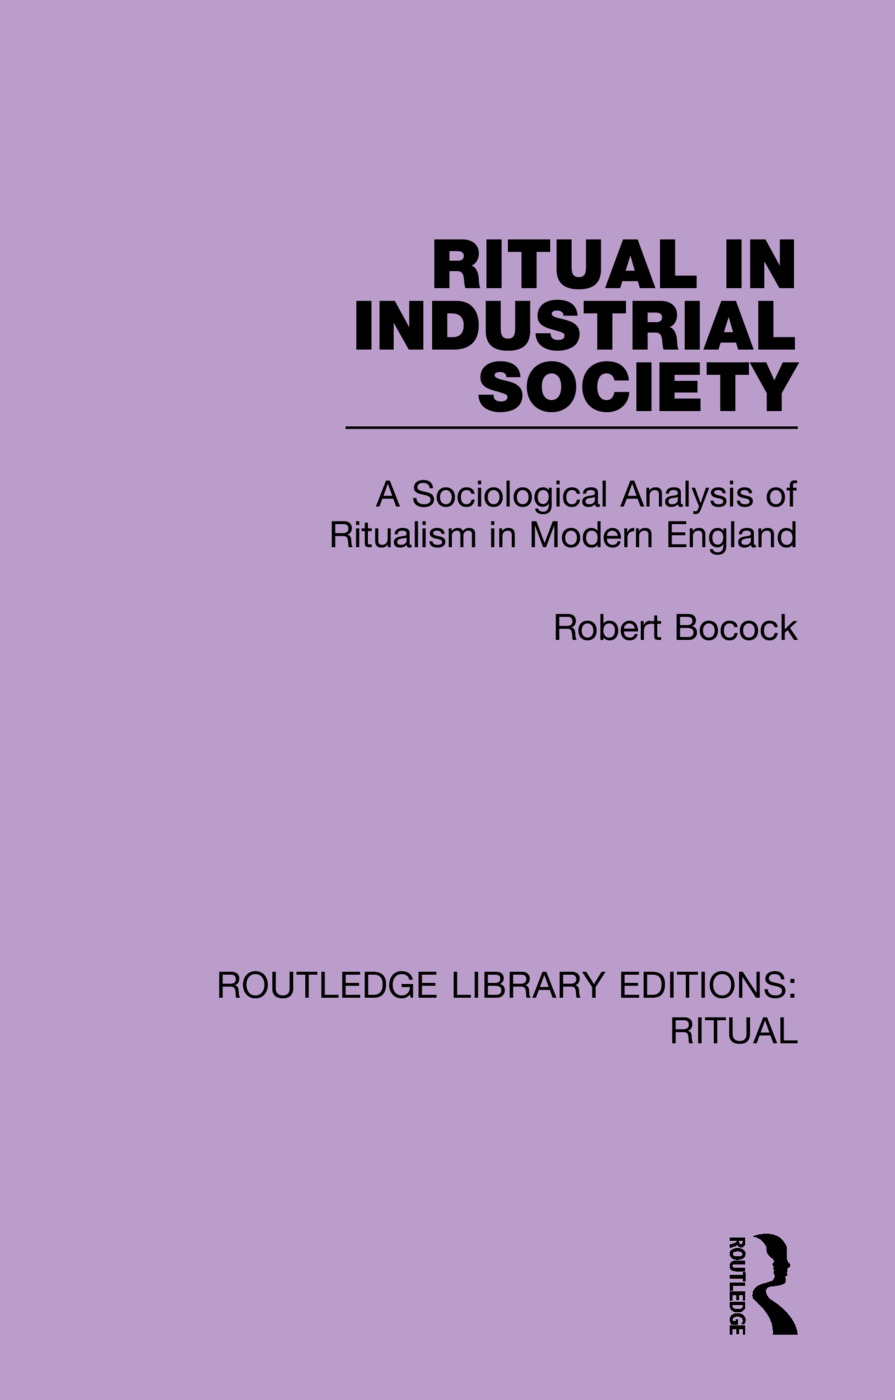 Ritual in Industrial Society: A Sociological Analysis of Ritualism in Modern England book cover